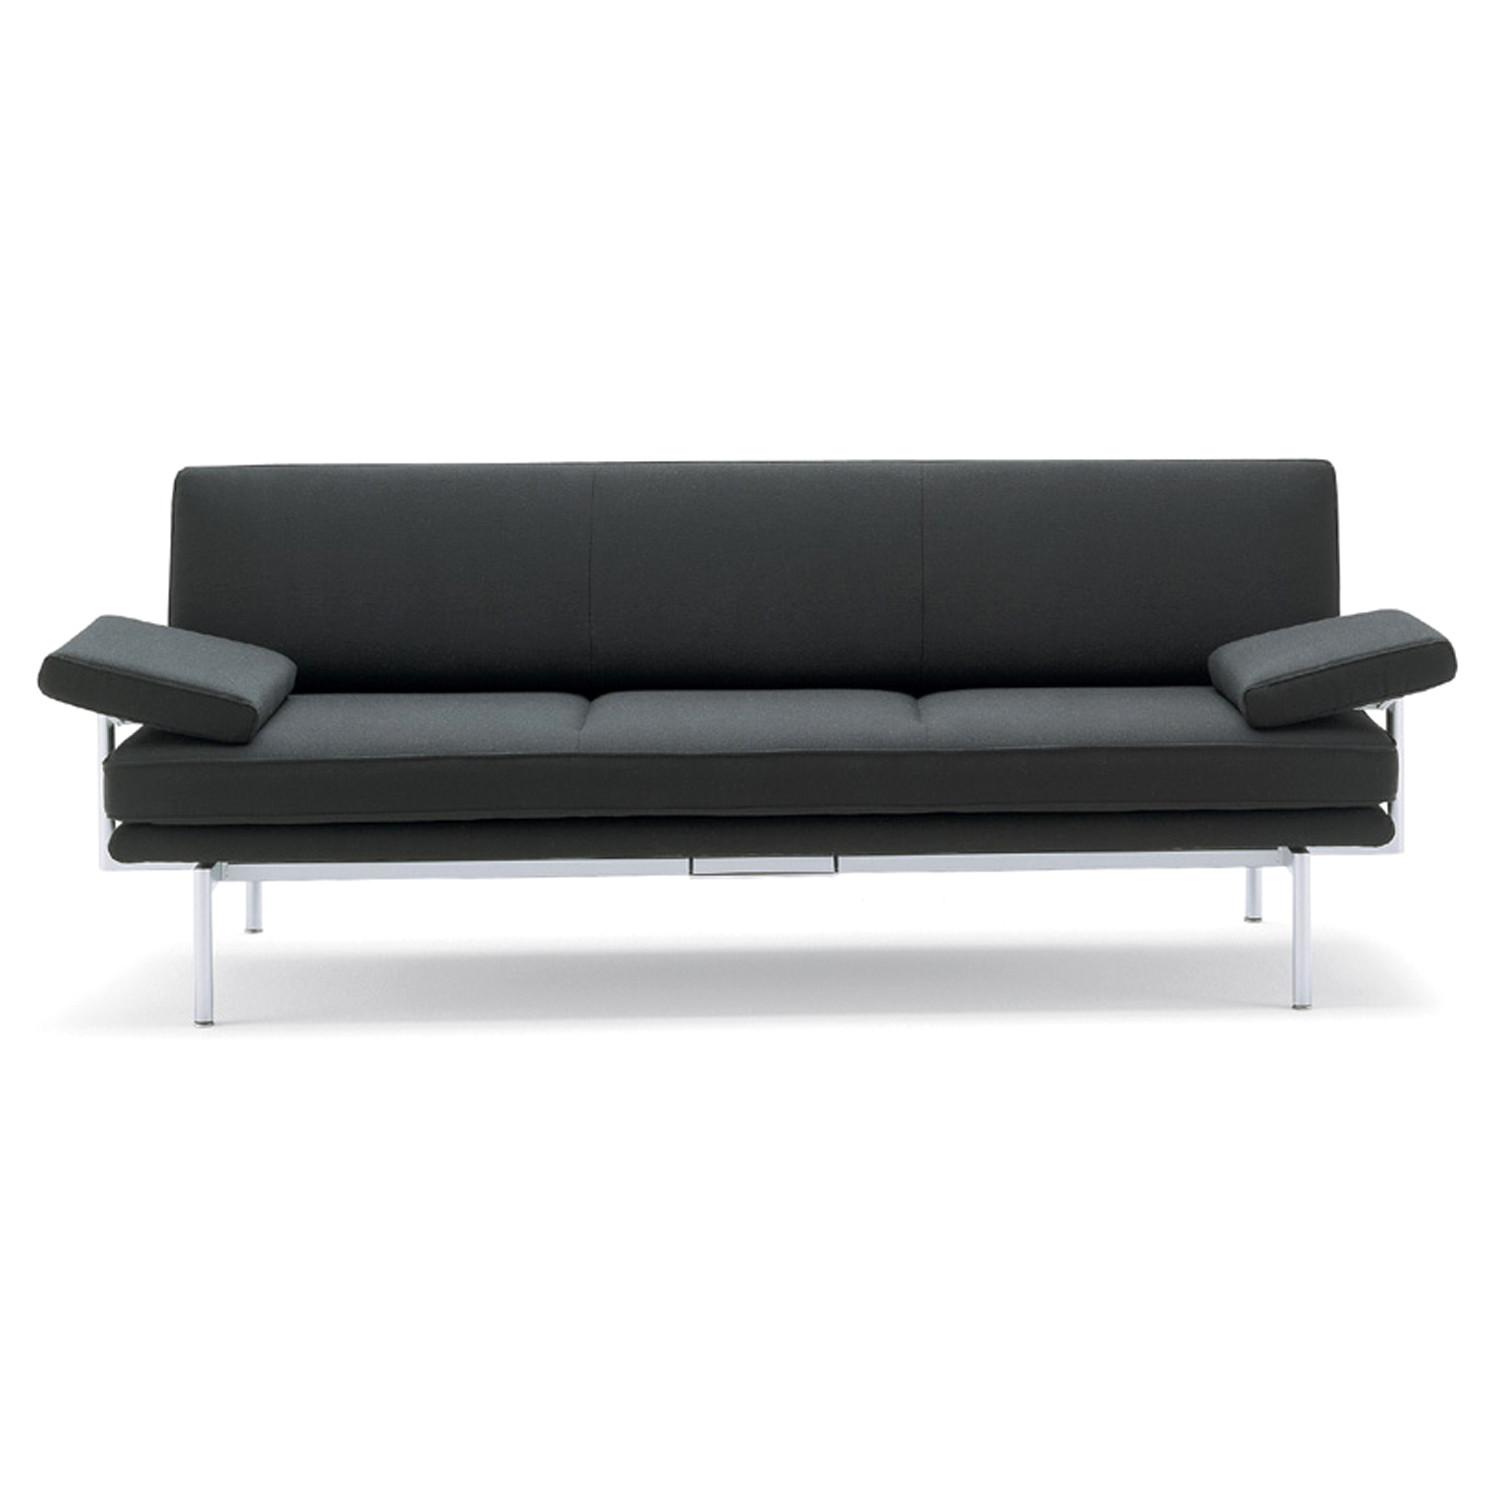 Living Platform Contemporary Sofa